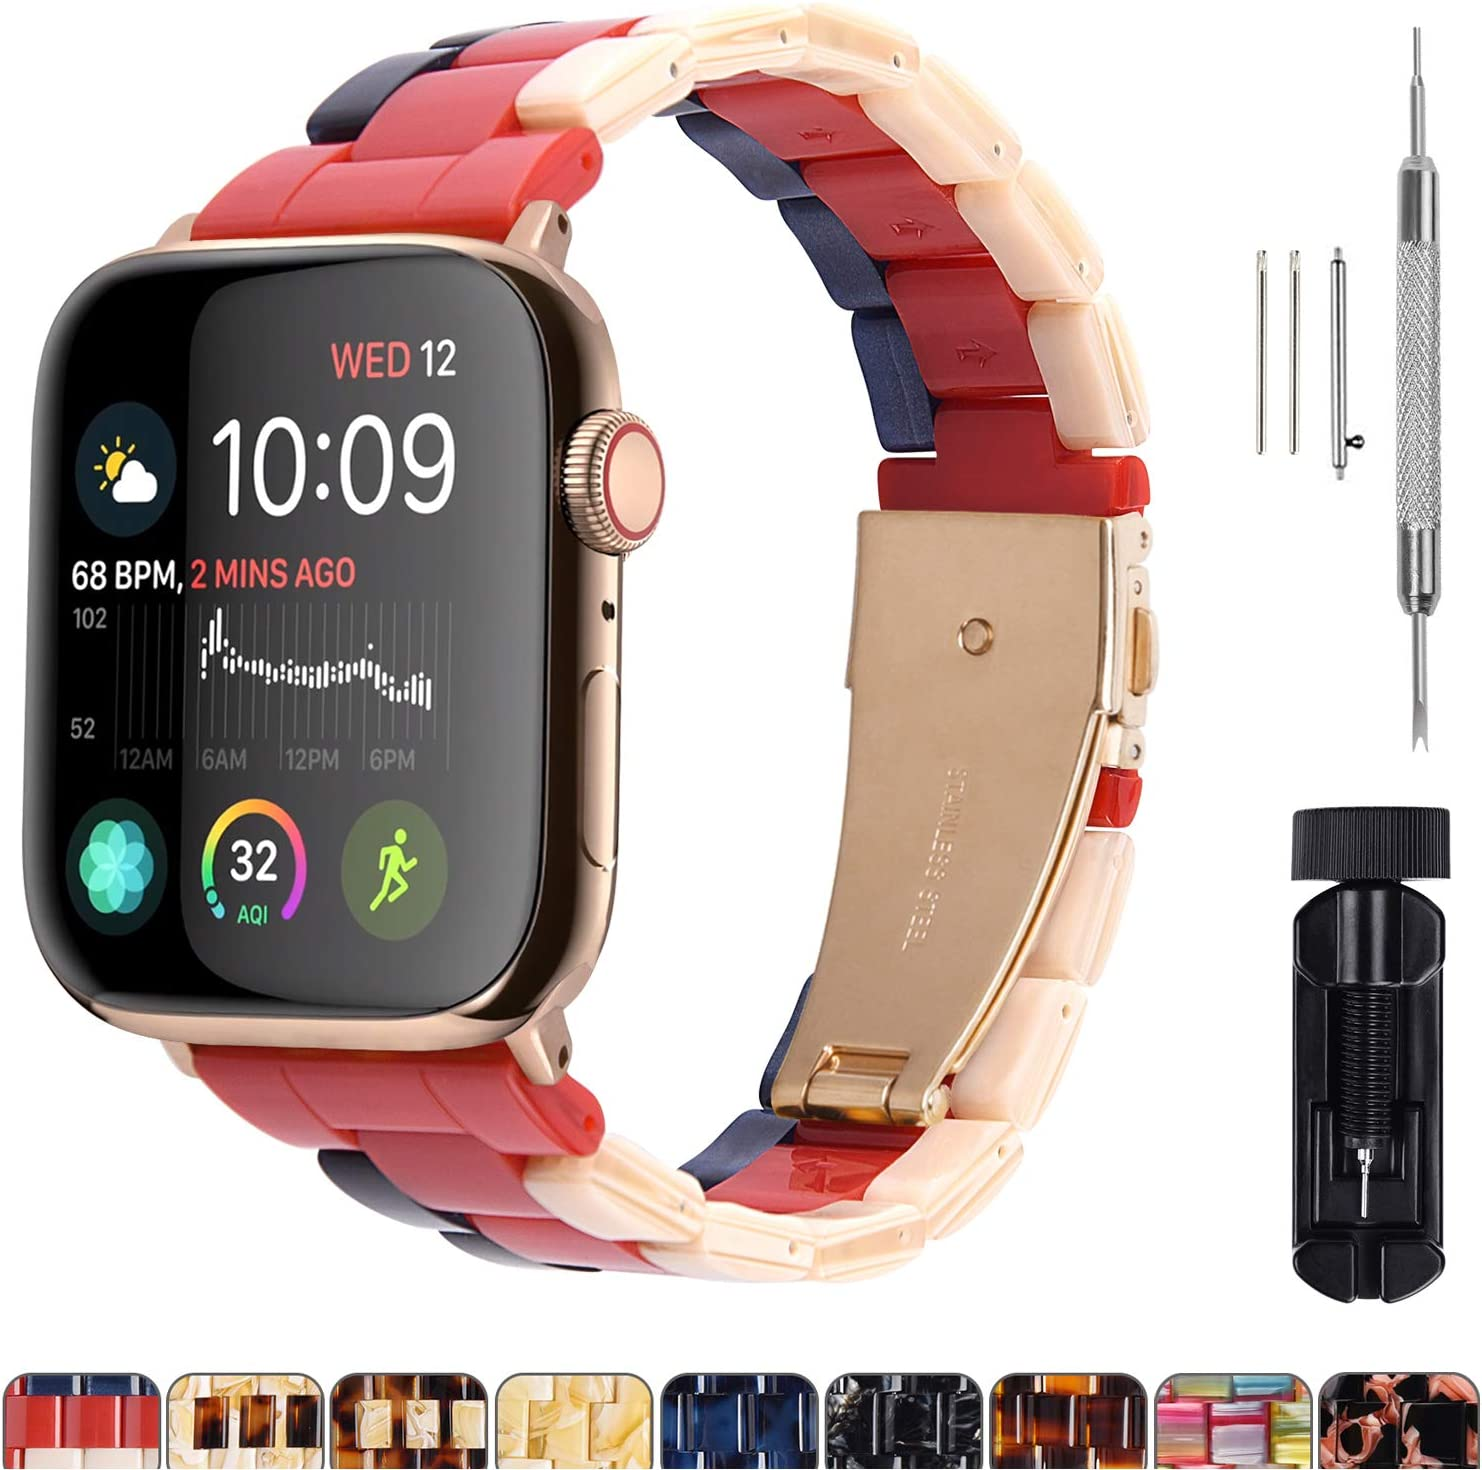 Fullmosa Compatible Apple Watch 44mm/42mm/40mm/38mm, Bright Resin Apple Watch Band for iWatch SE & Series 6/5/4/3/2/1, Hermes, Nike+, Edition, Sport, Beige+Red+Sapphire(Gold Hardware) 44mm